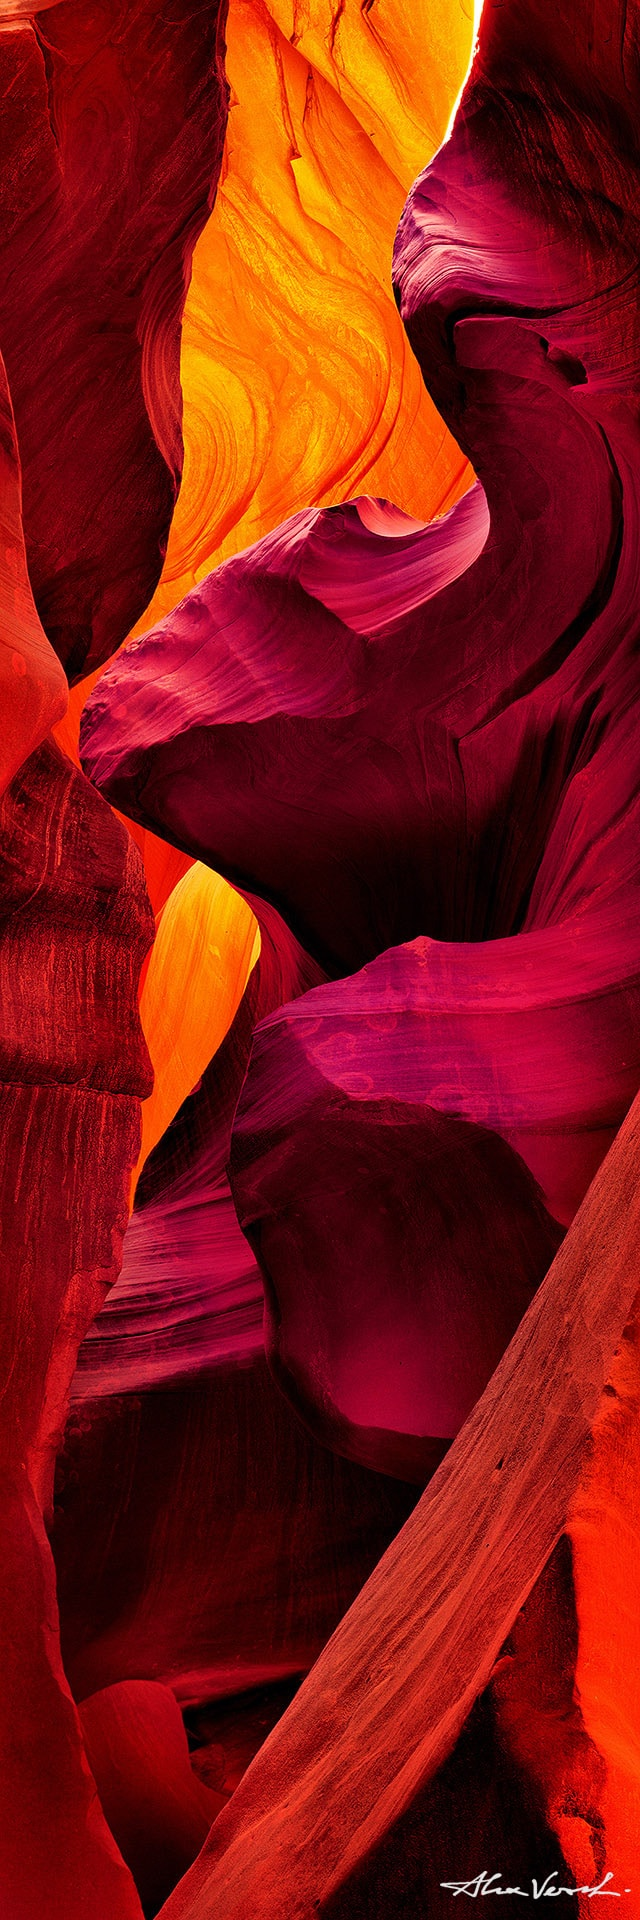 Alexander Vershinin, Arizona Landscape photos, Page, Antelope canyon, abstract, Limited edition prints, Fine Art, The Touch, photo